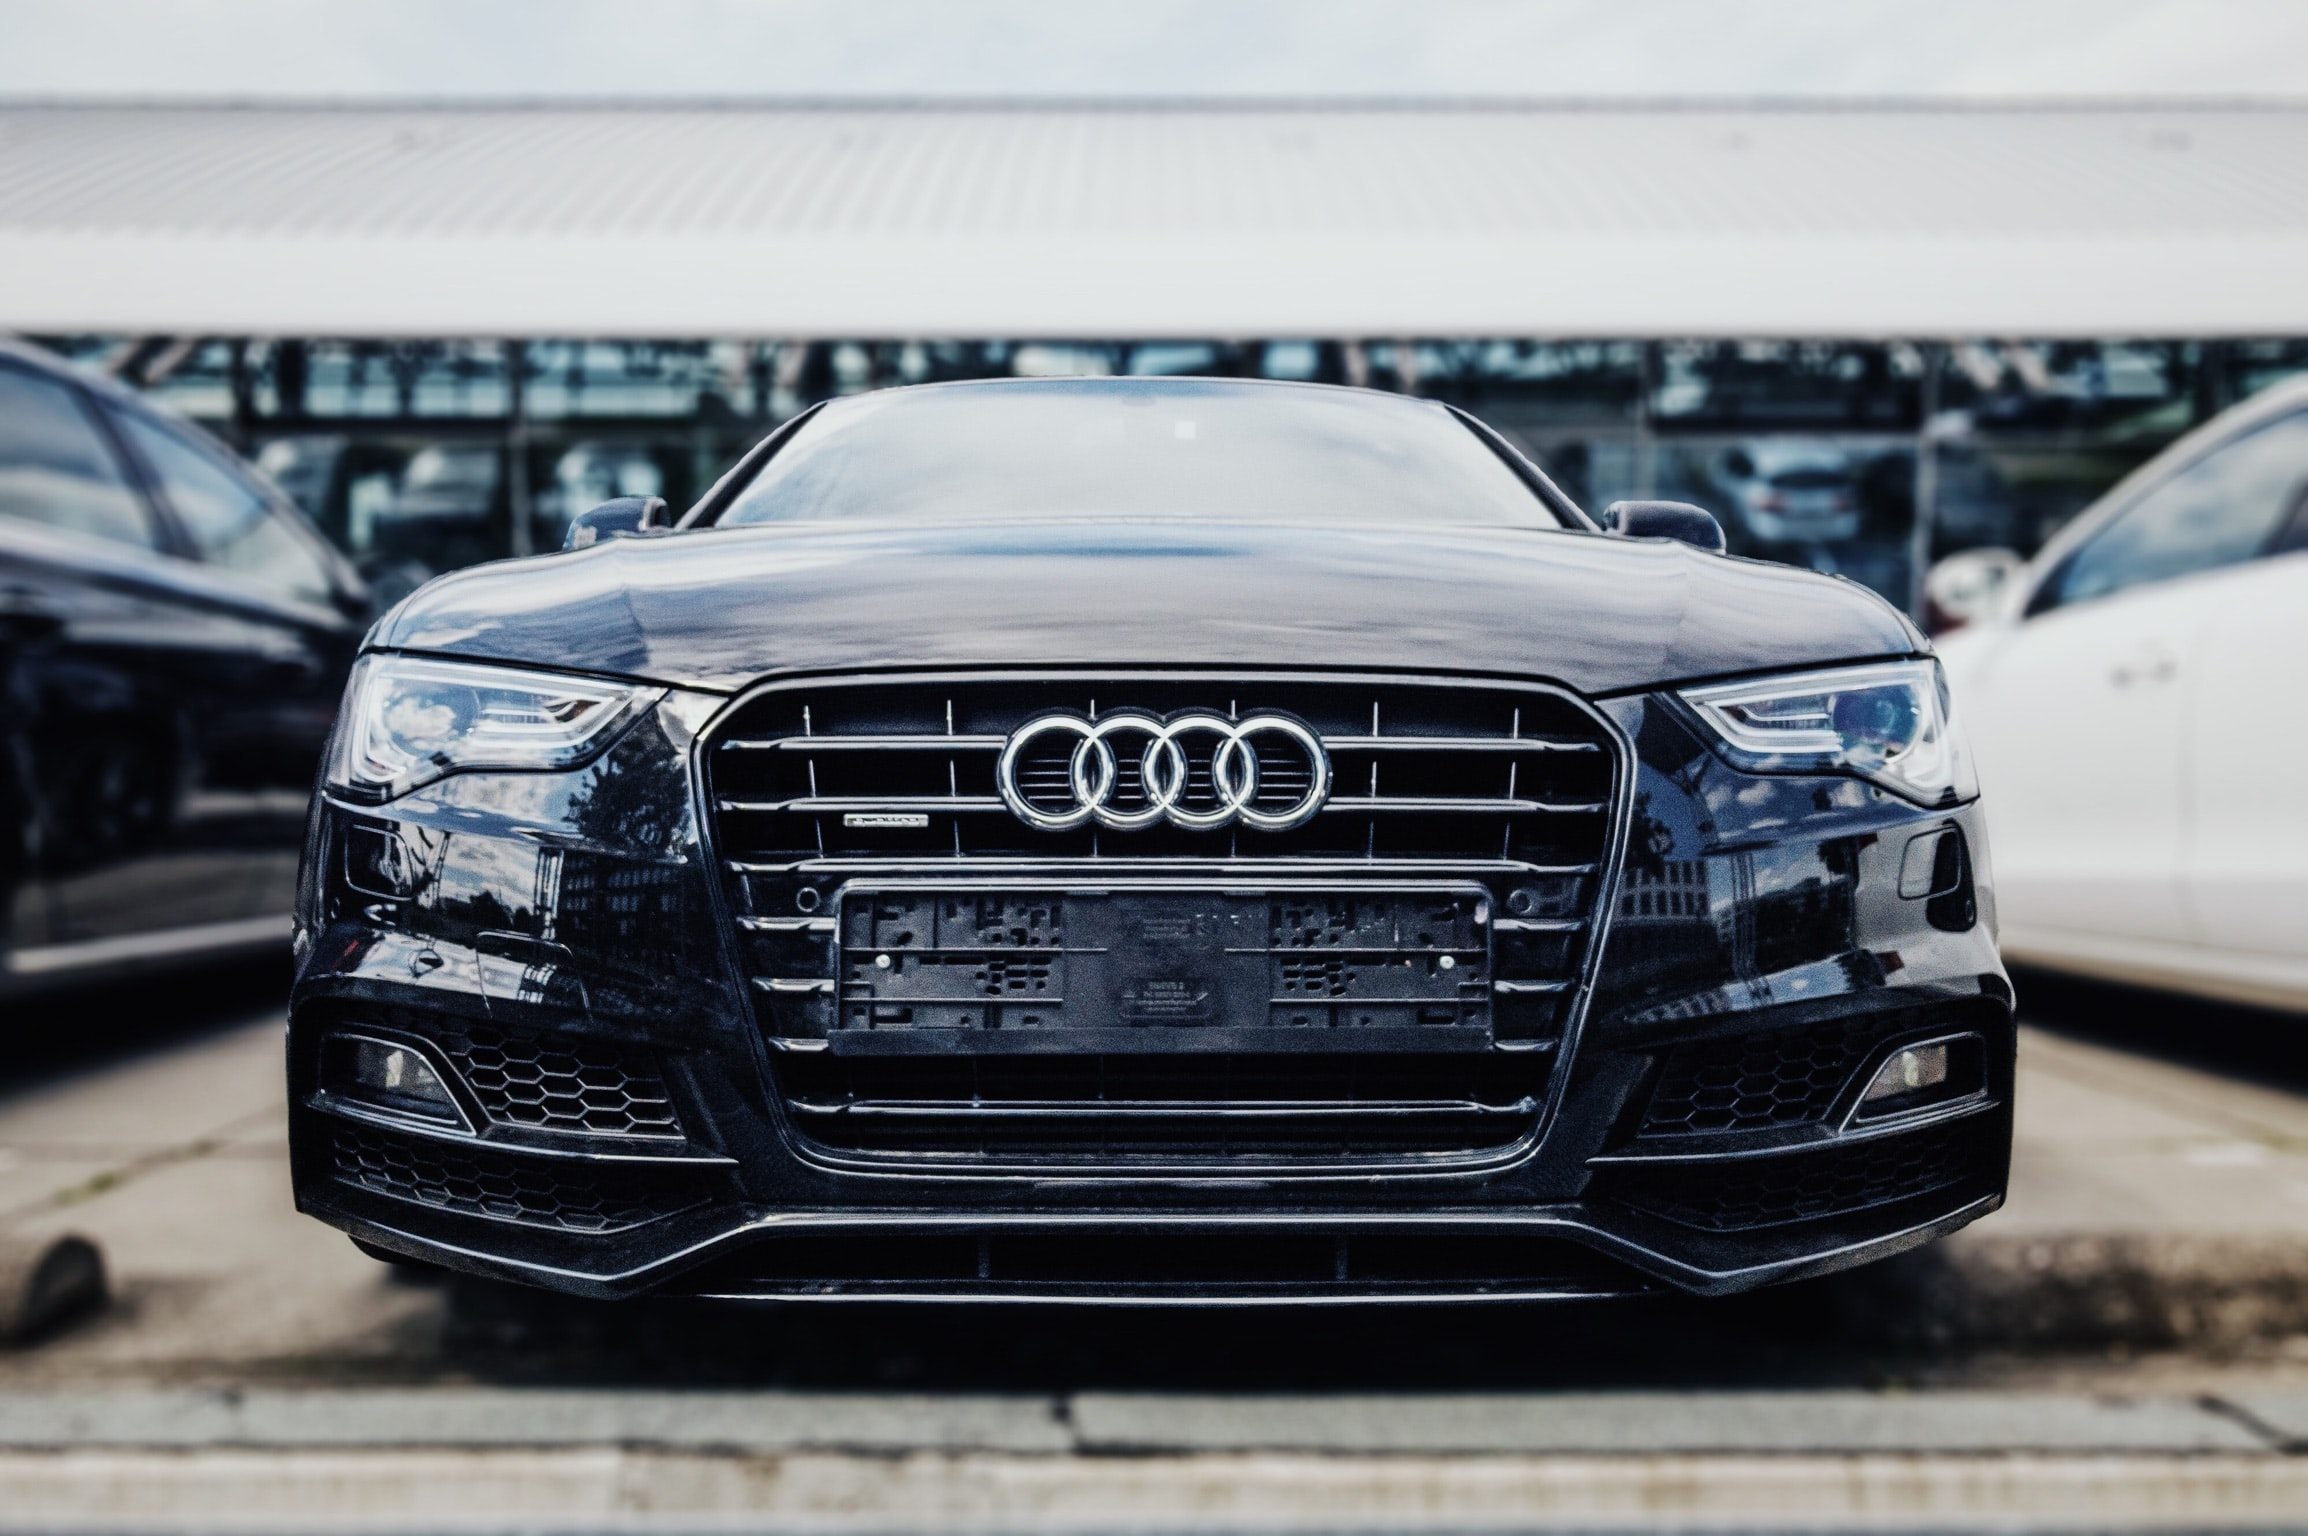 shallow focus photography of black Audi sedan